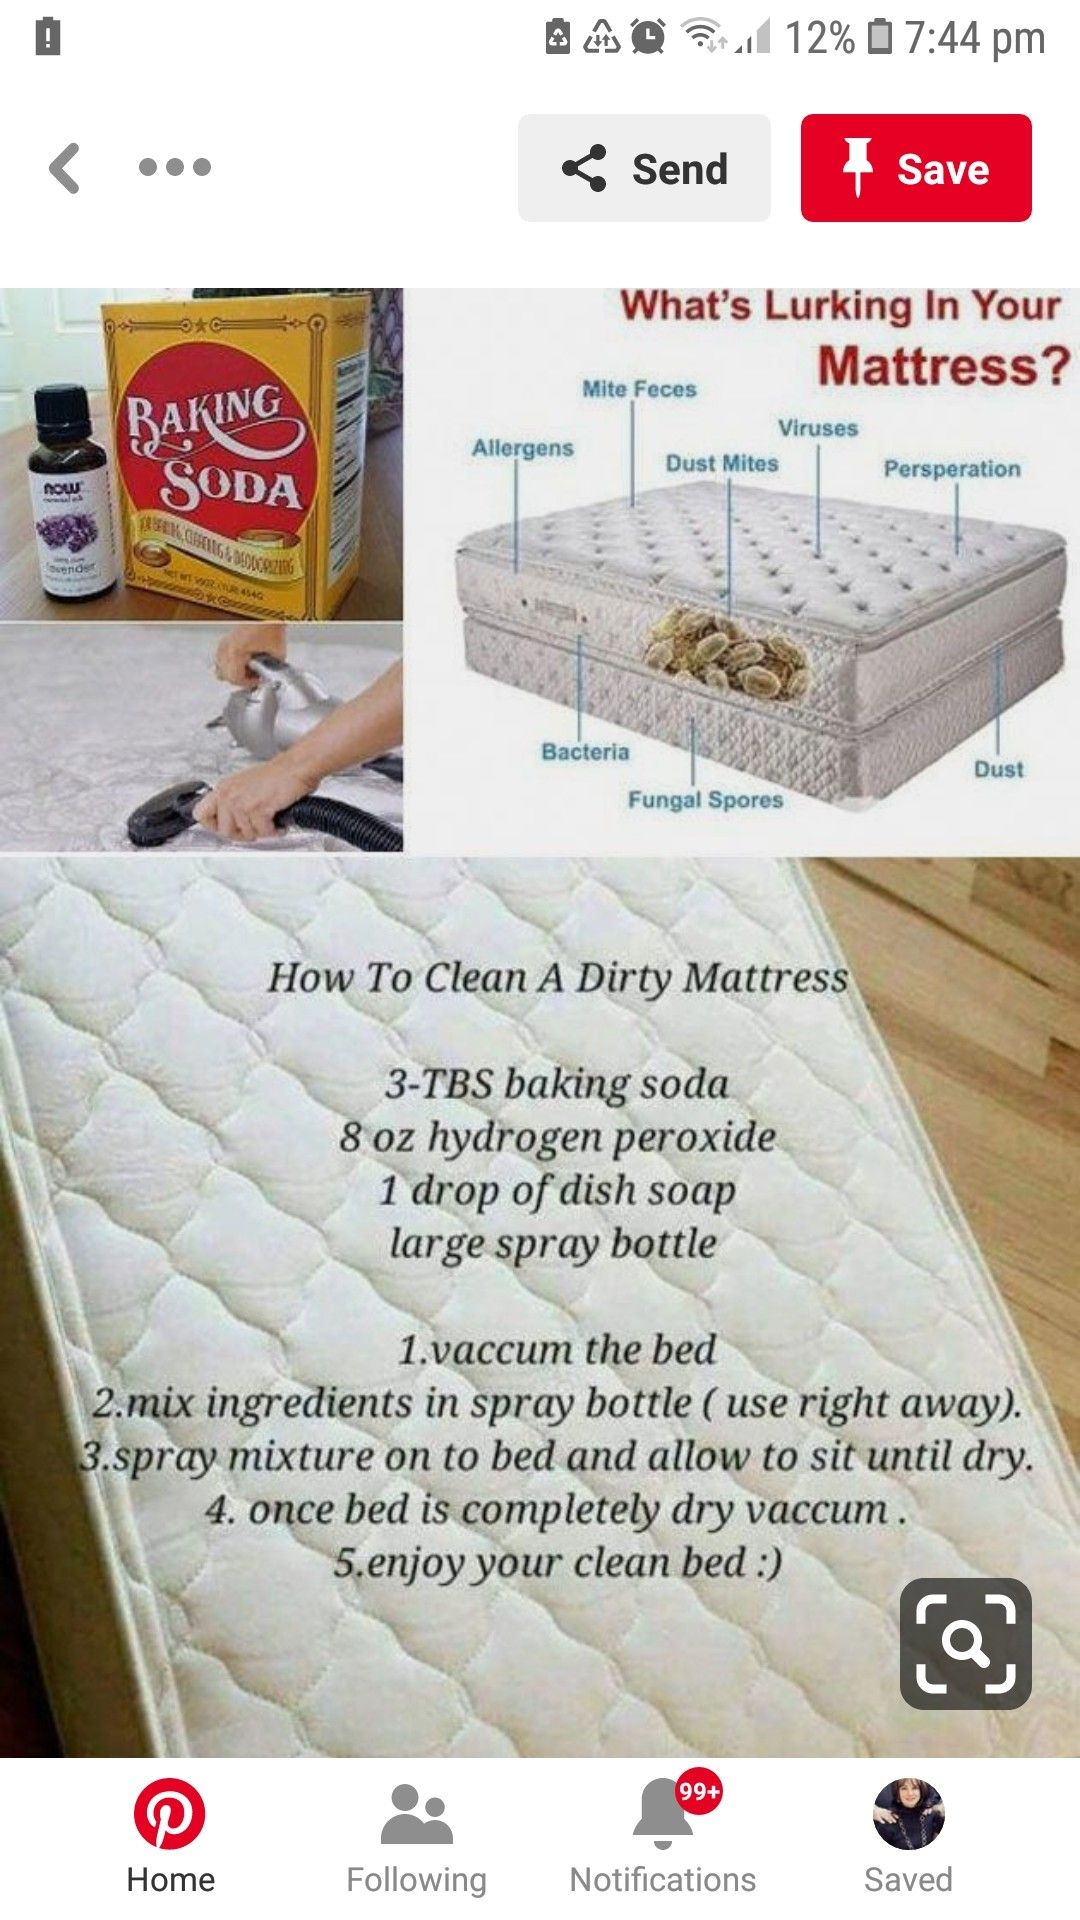 Pin by Marianne on Cleaning Mattress cleaning, Cleaning